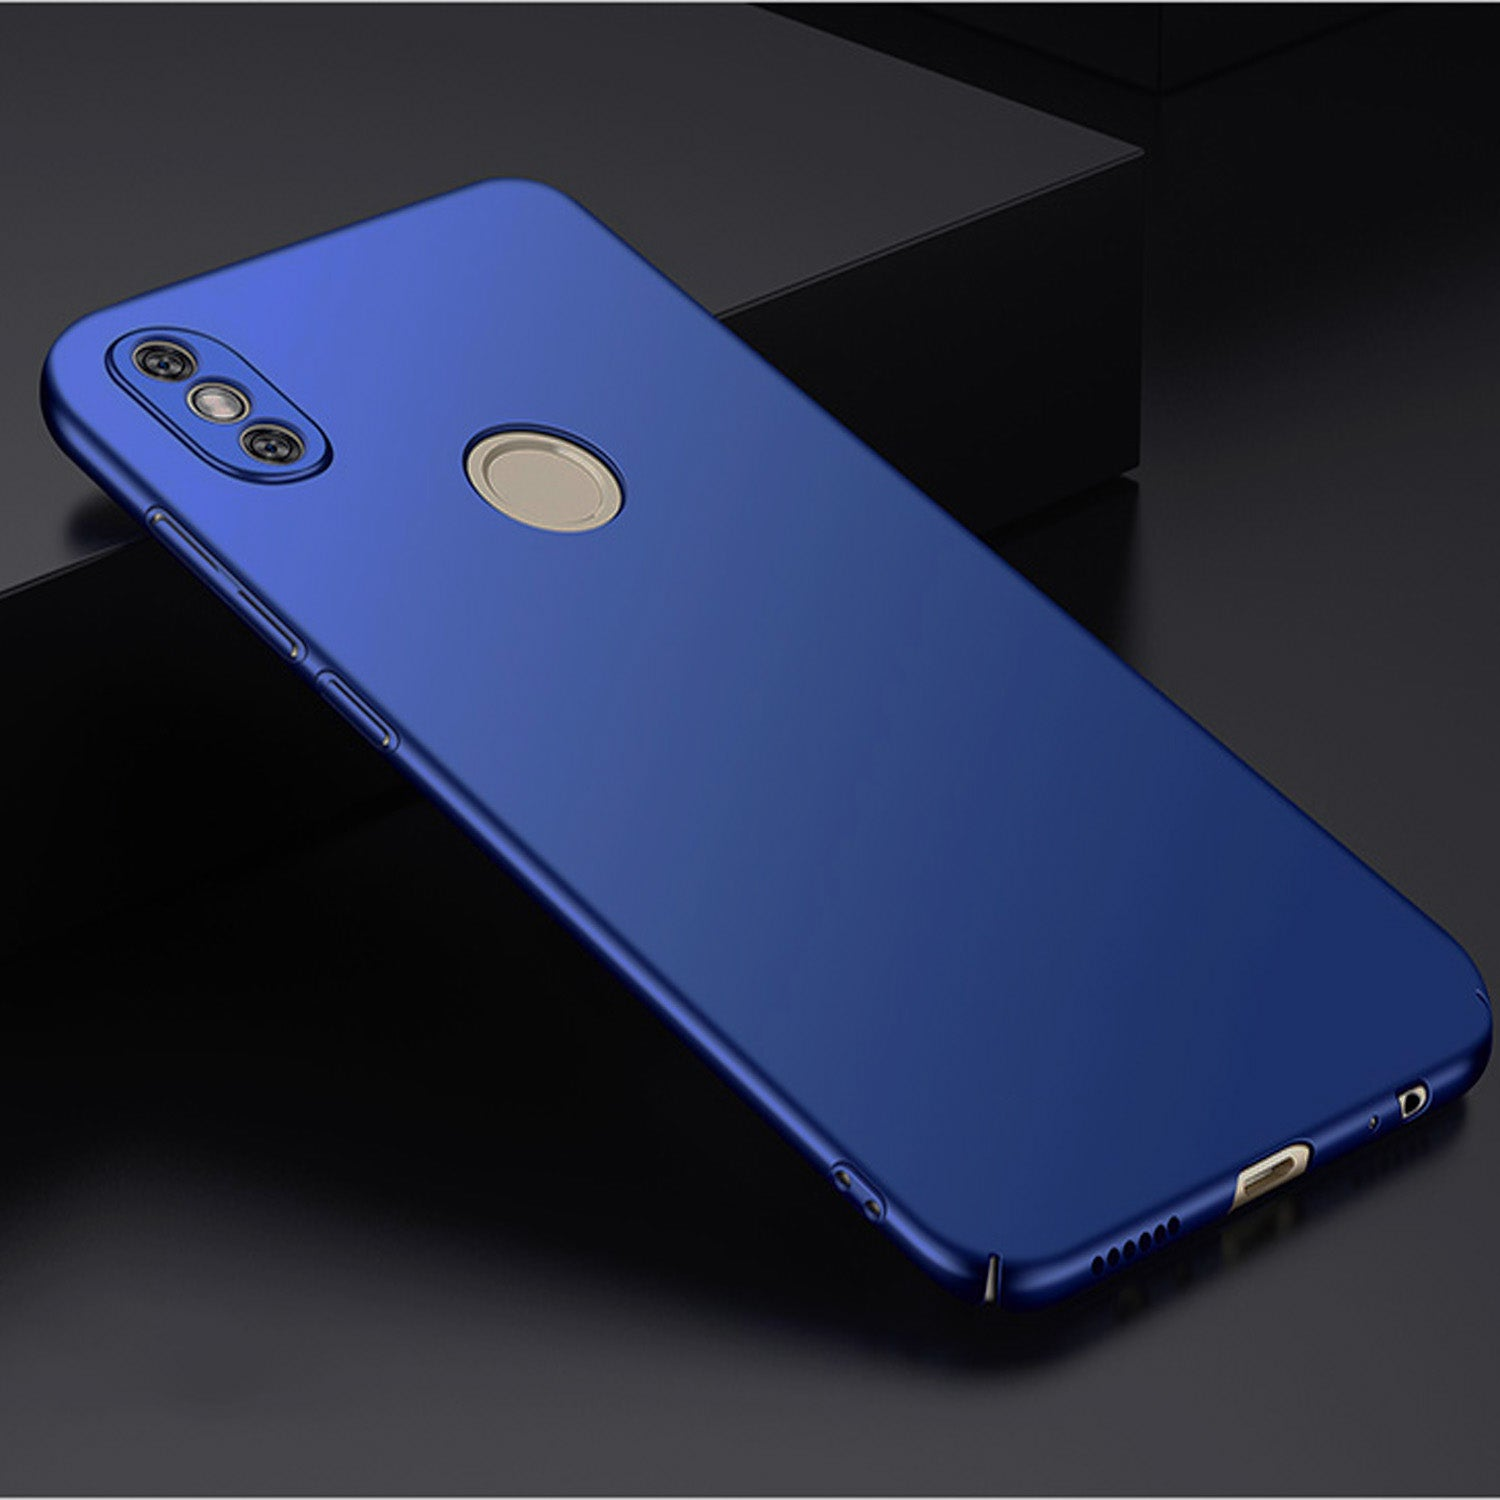 Silk Smooth Finish All Sides Protection Slim Camera Lens + Back Case Cover For Xiaomi Redmi Note 5 PRO - Blue - Mobizang